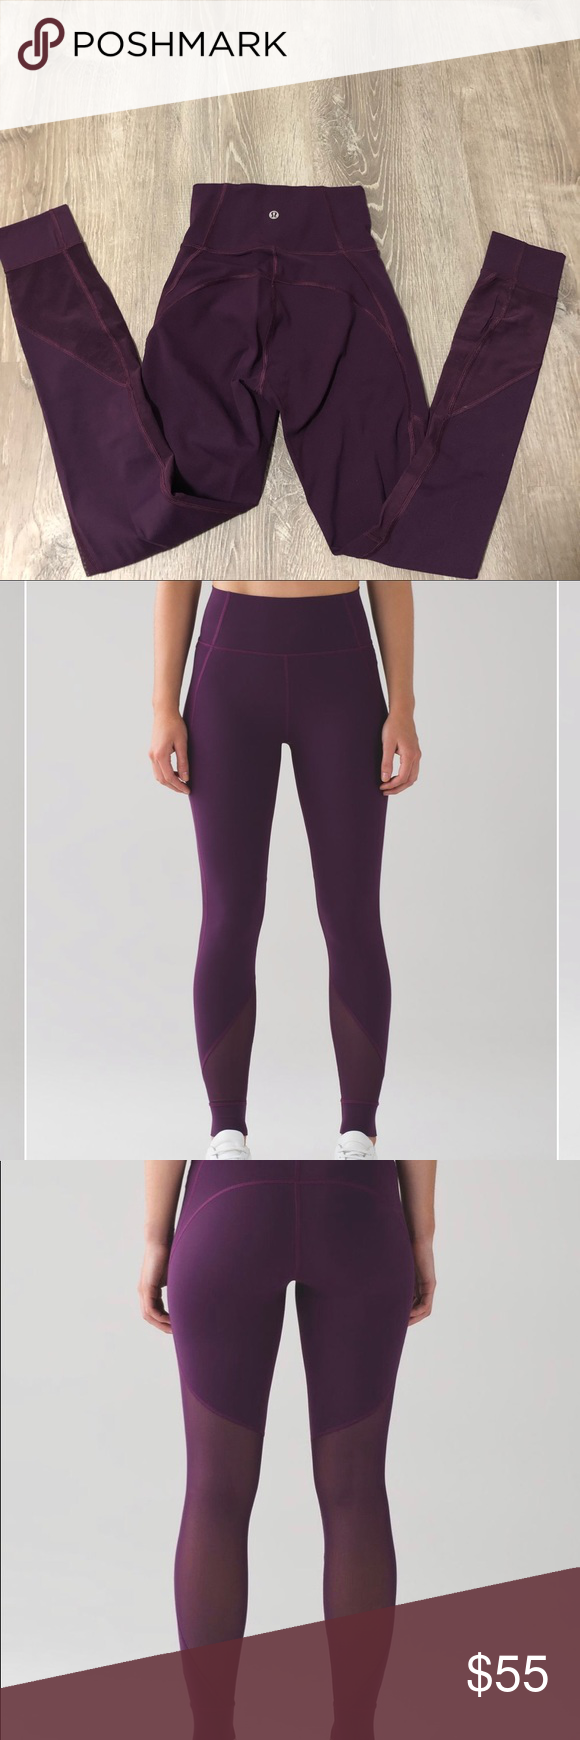 c1d06a1a3d Lululemon Hot Like Agni Pant in Darkest Magenta Size 2 Luxtreme material  with cute and stretchy